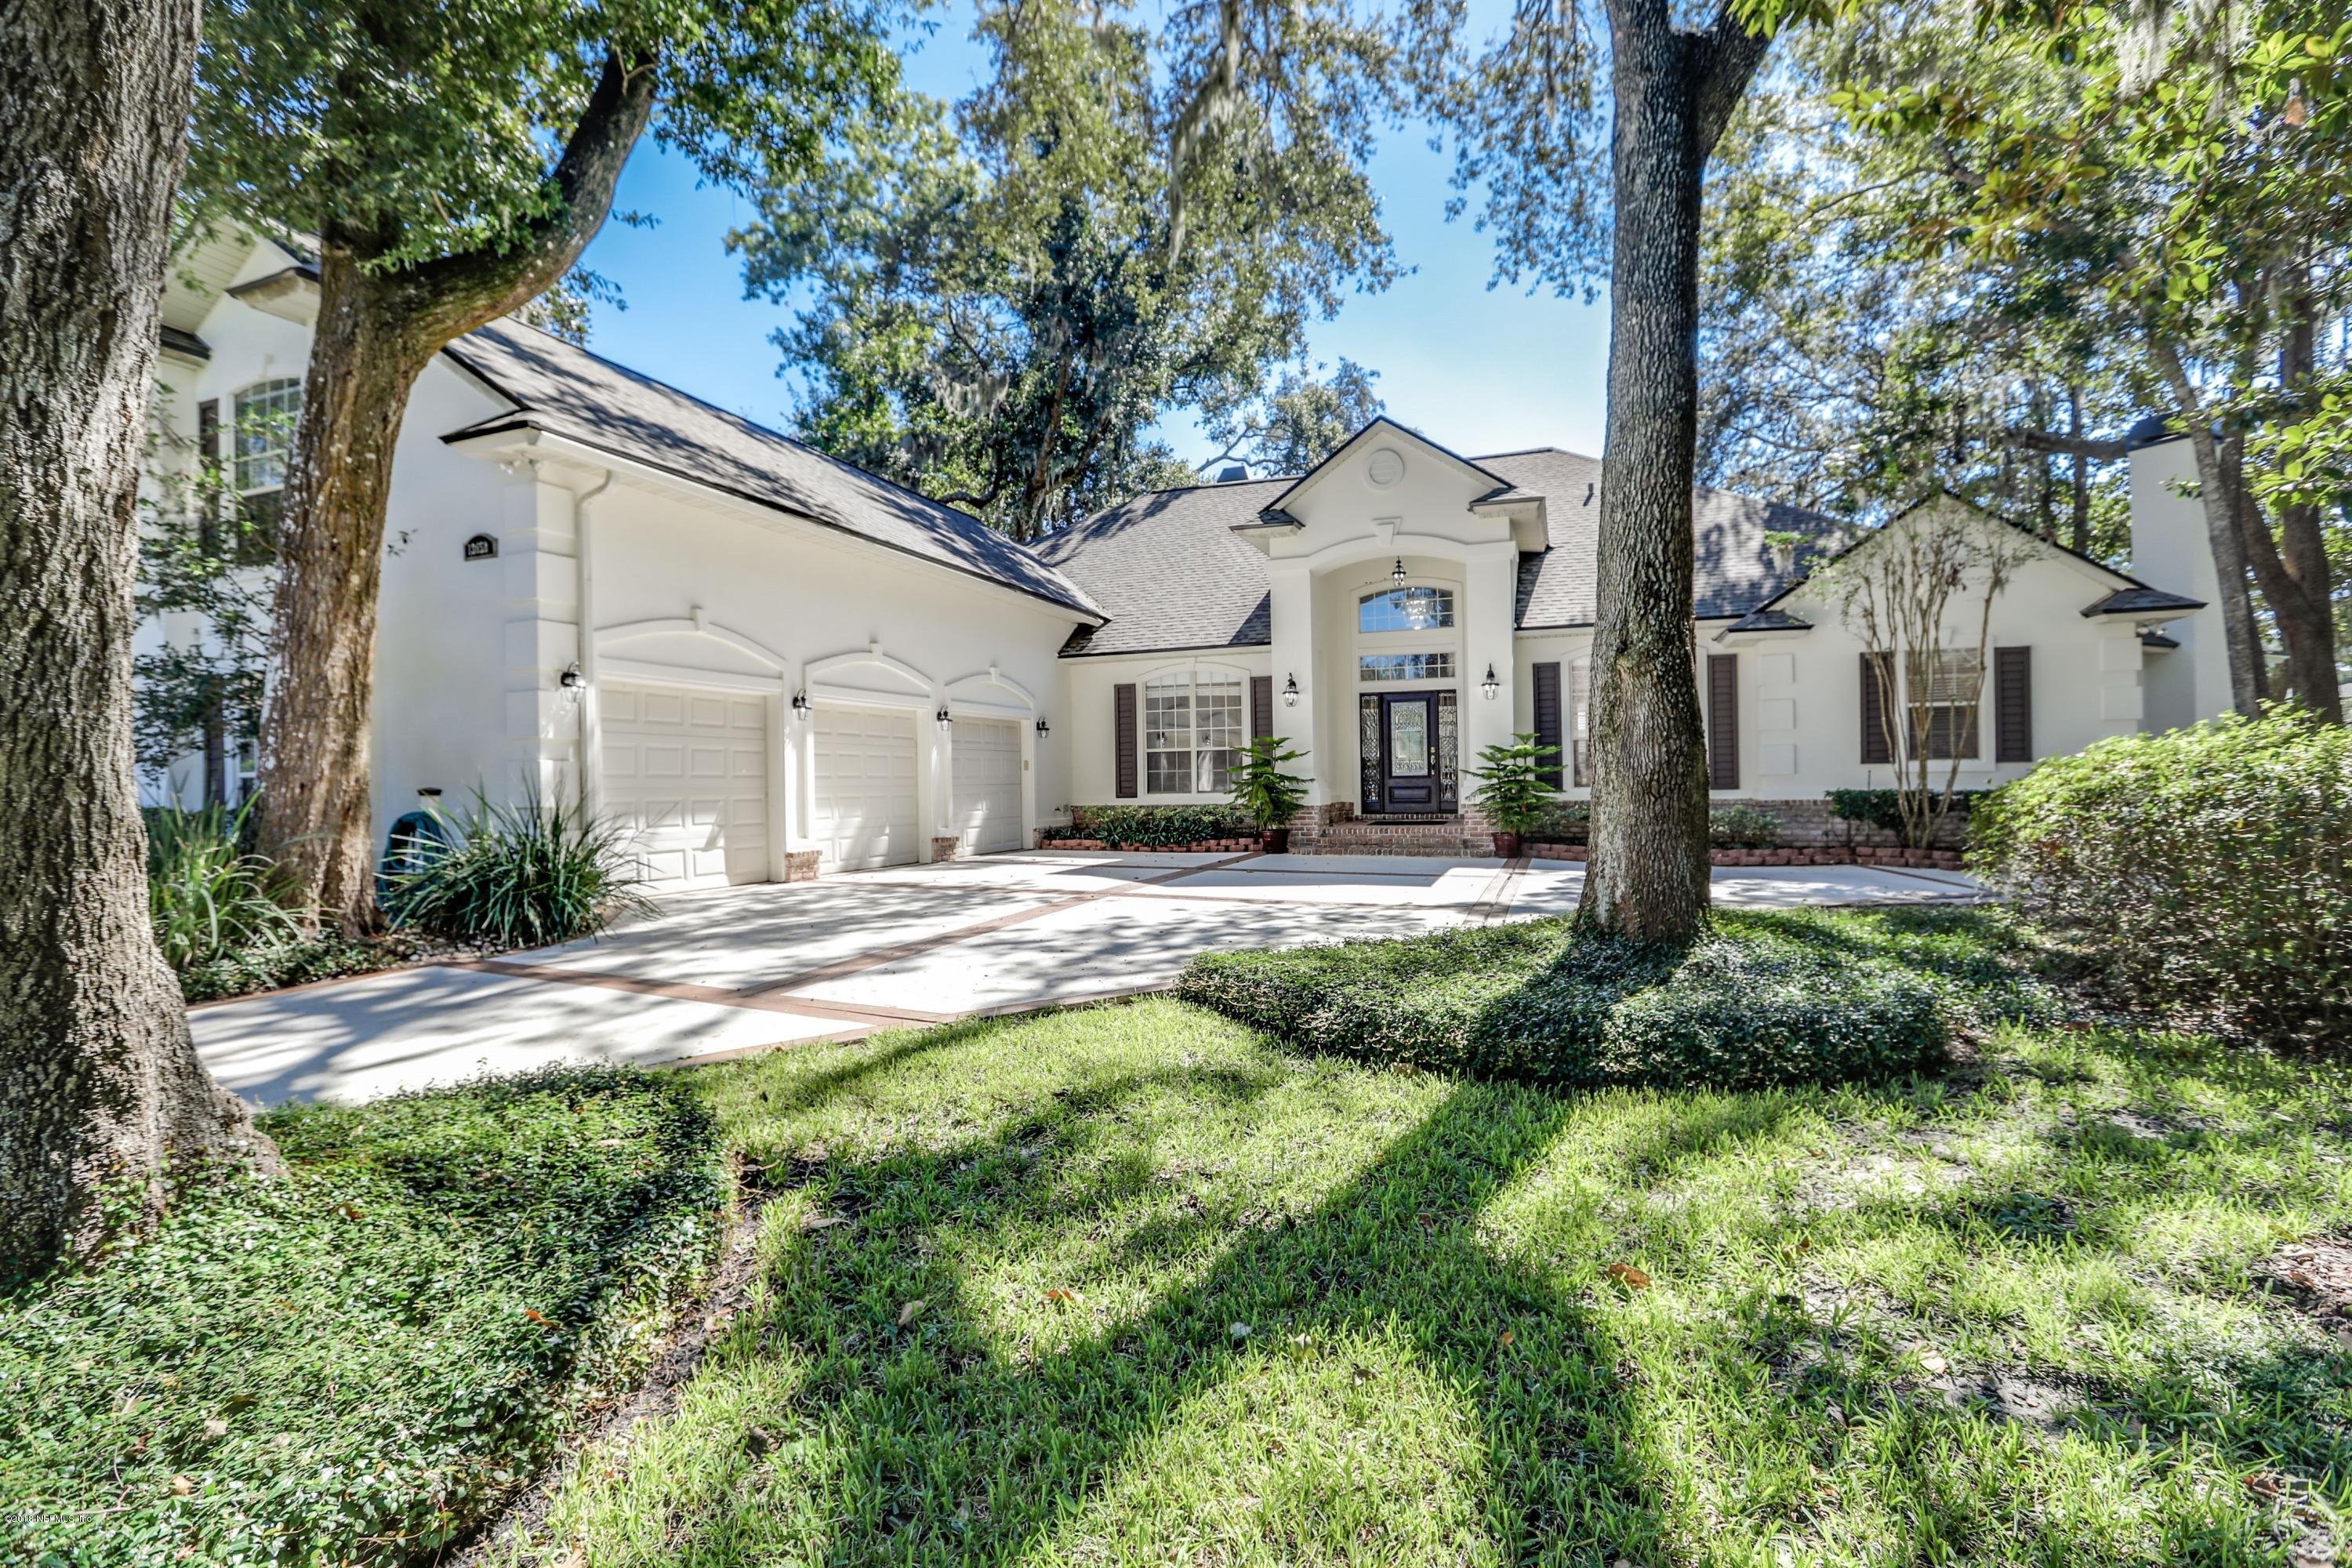 13658 LITTLE HARBOR CT., JACKSONVILLE, FLORIDA 32225, 5 Bedrooms Bedrooms, ,5 BathroomsBathrooms,Residential - single family,For sale,LITTLE HARBOR CT.,962209